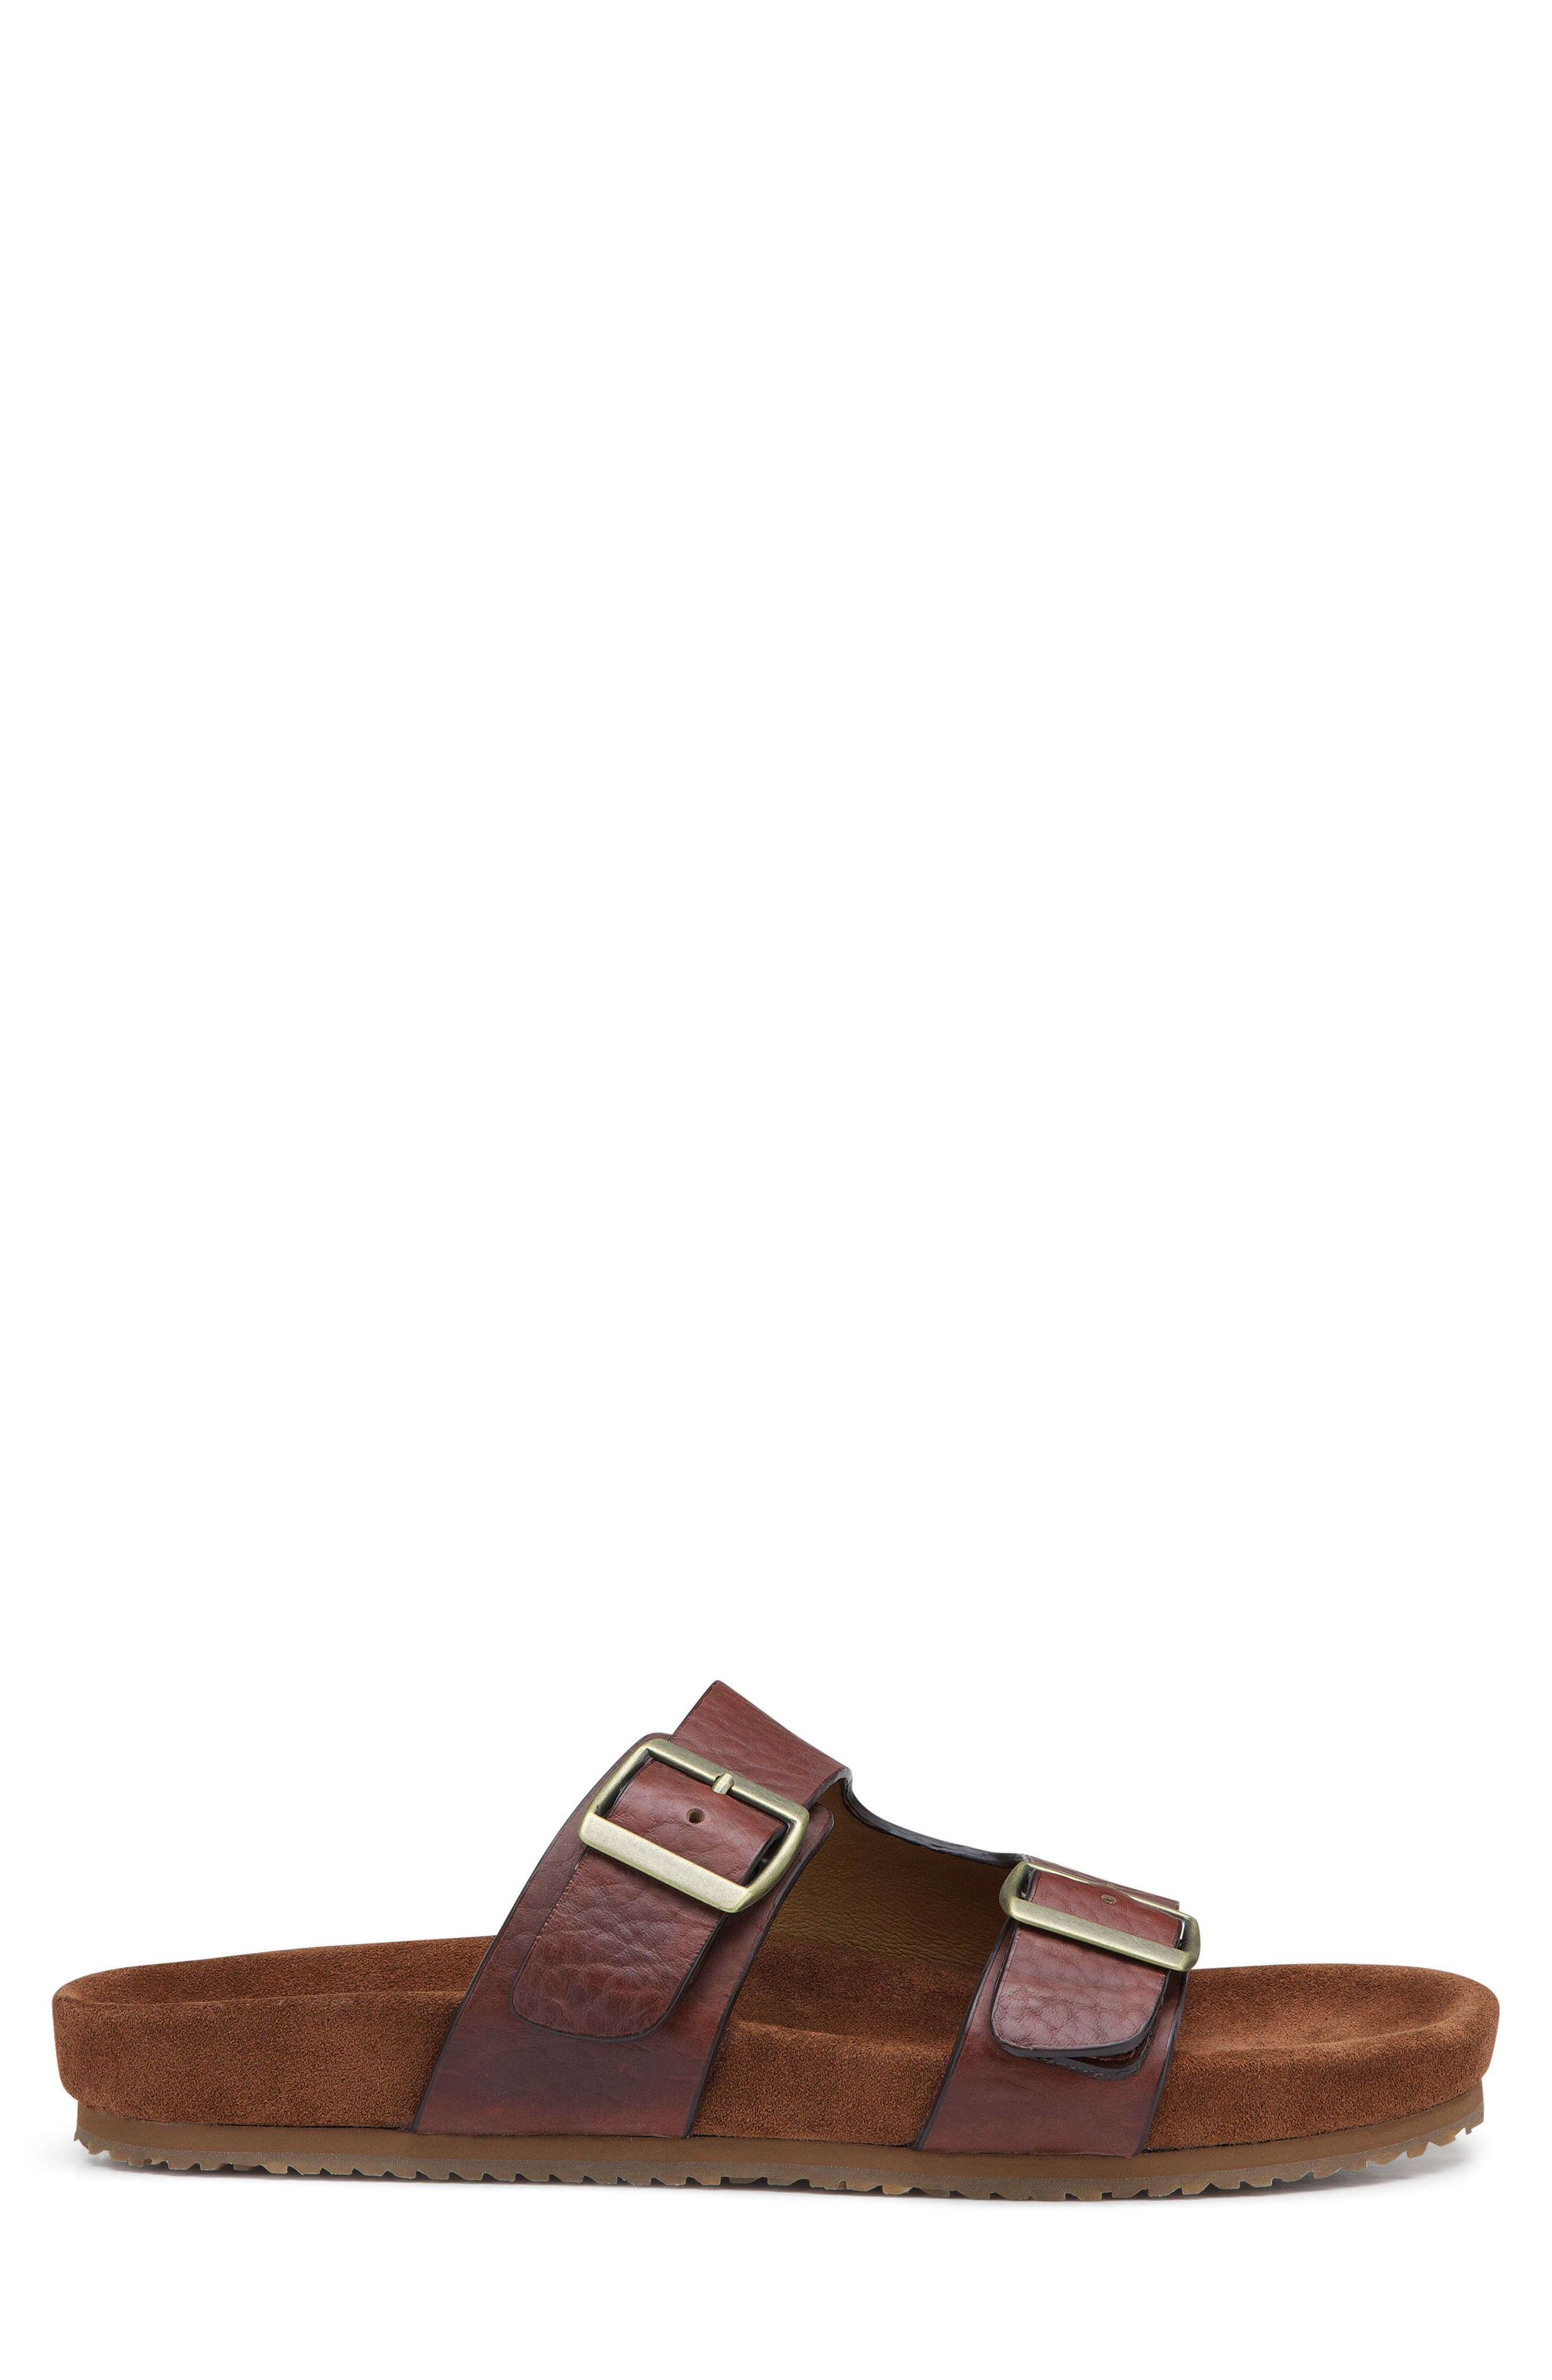 Findley Slide Sandal,                             Alternate thumbnail 3, color,                             235